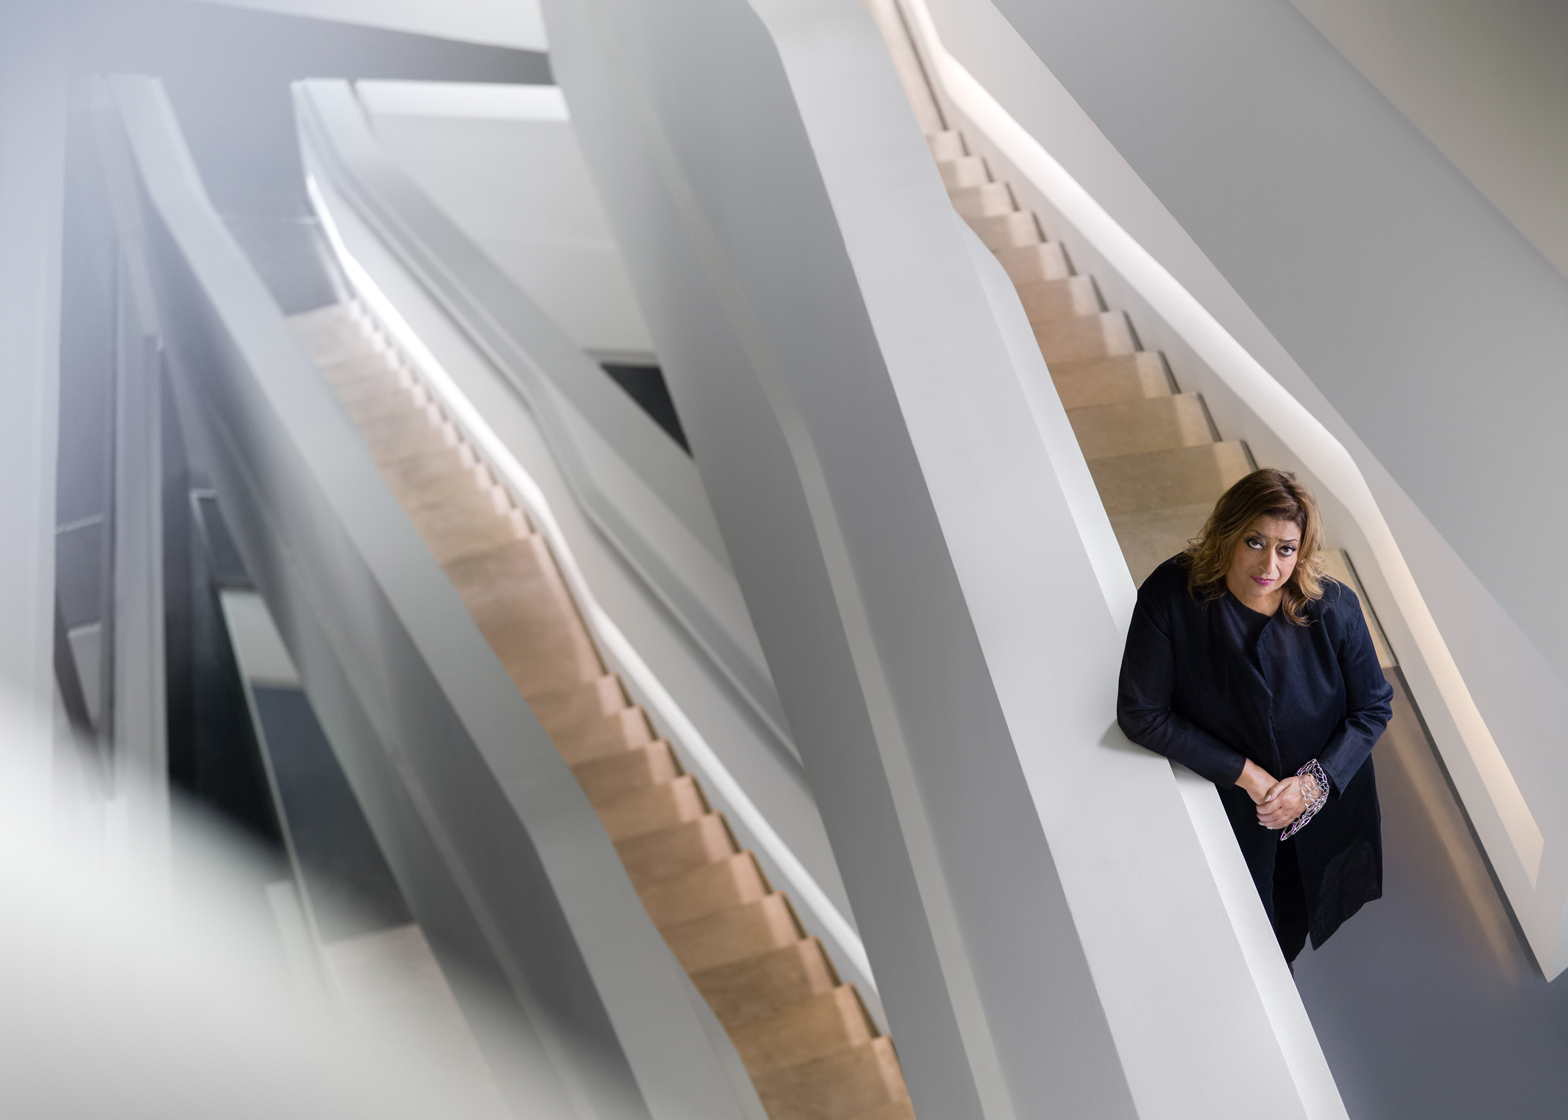 The organisers of the Tokyo 2020 Olympics are refusing to pay Zaha Hadid for her scrapped stadium design until she gives up all copyright on the project and signs a gagging order